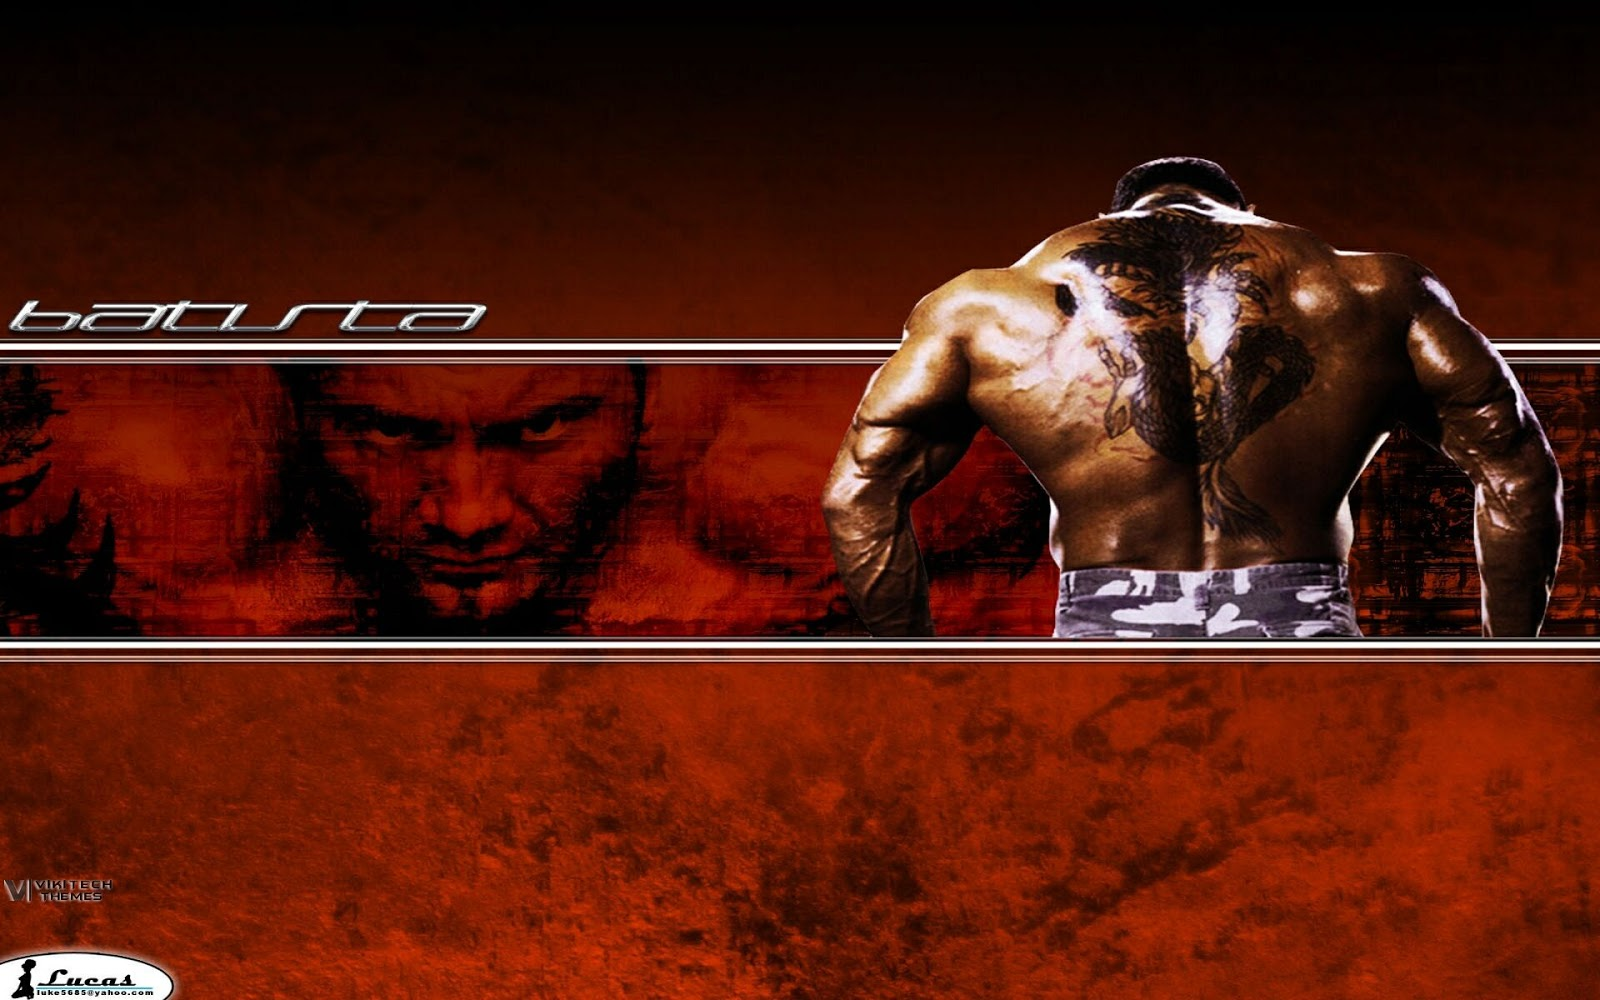 3d Home Wallpaper Malaysia Free Download Wwe Full Hd Wallpapers 2013 1920x1200